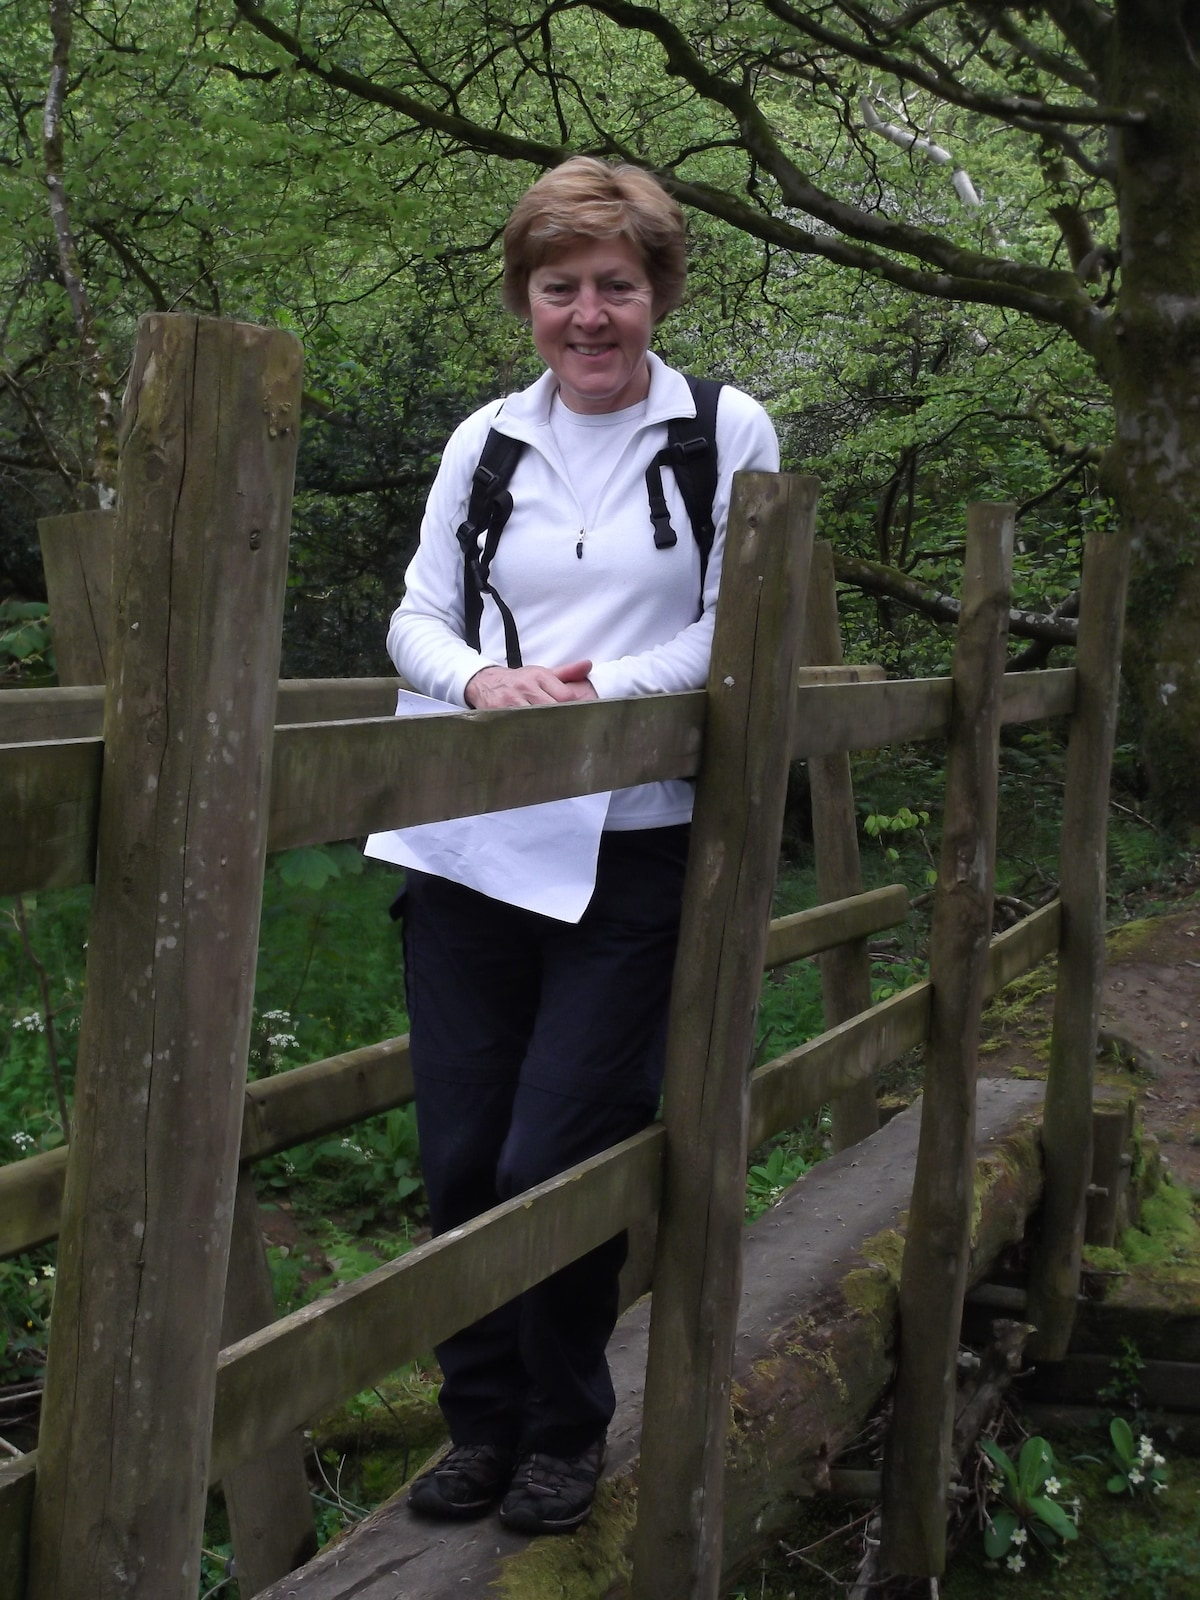 Gillian from Hathersage, Hope Valley